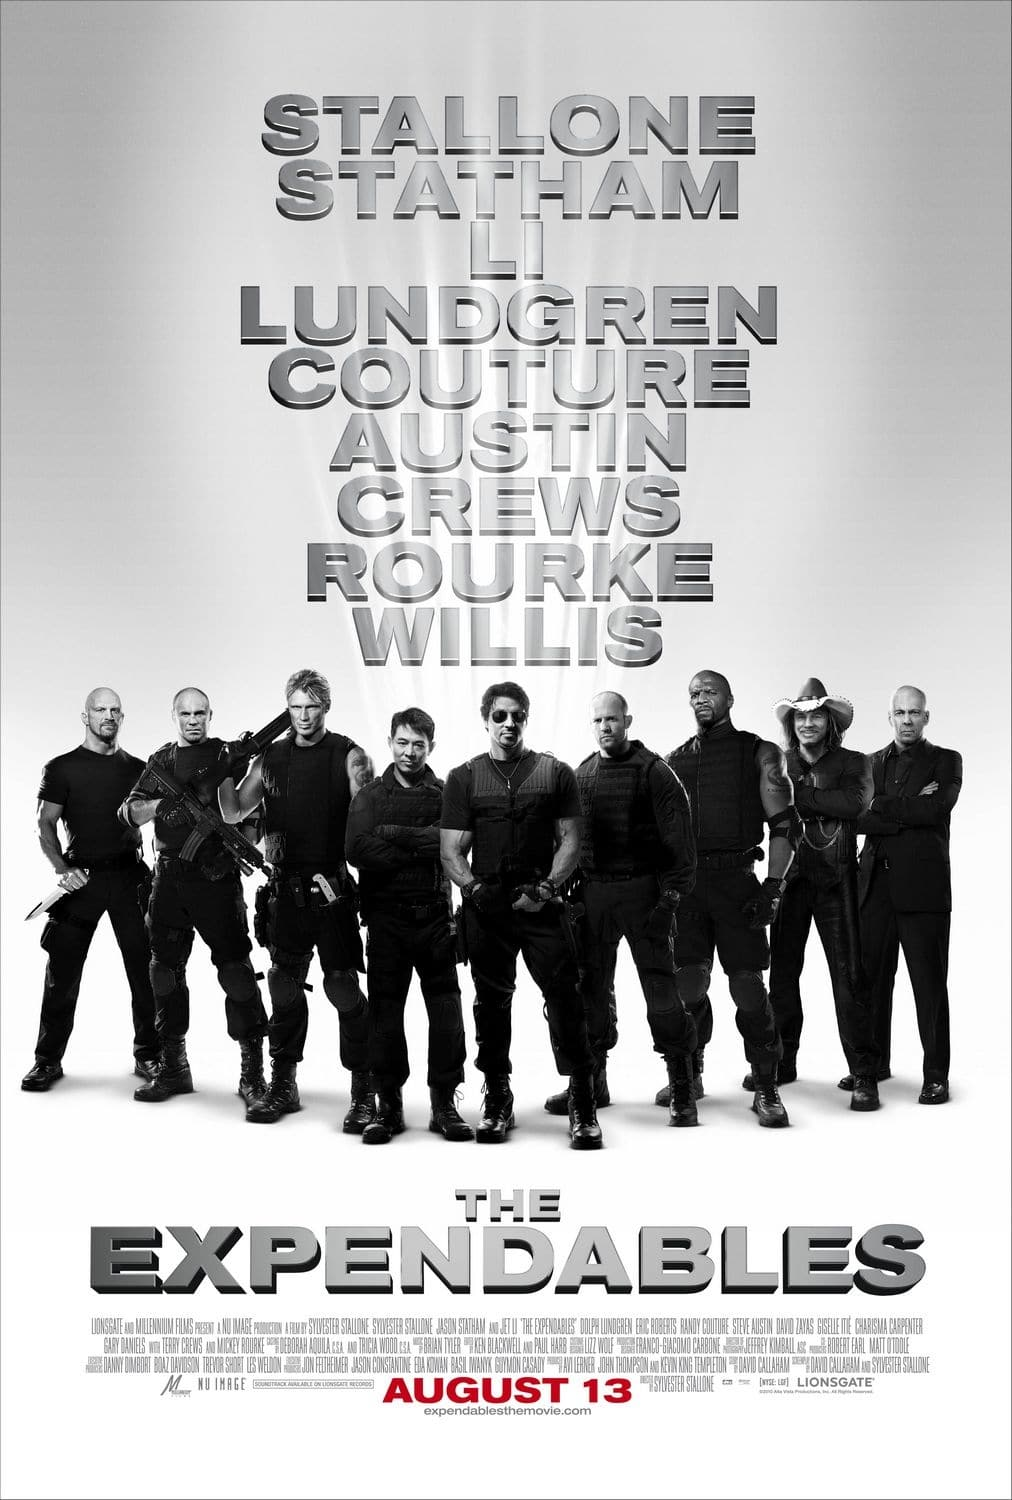 http://www.eklecty-city.fr/wp-content/uploads/2010/06/The-Expendables-Poster.jpg